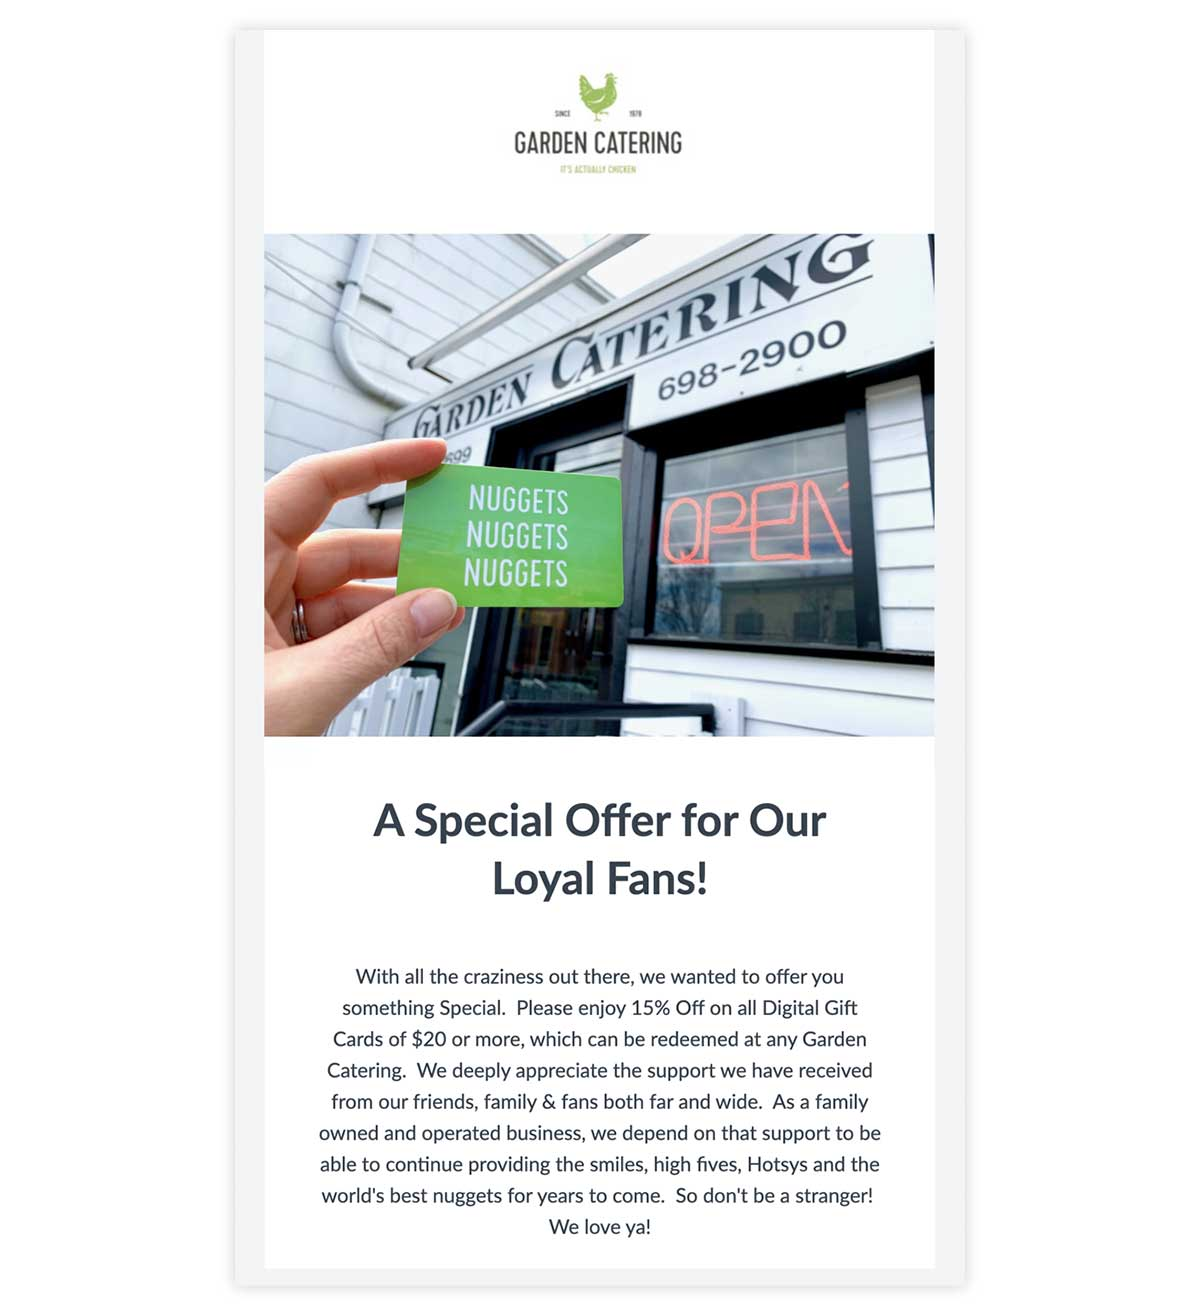 Garden Catering gift card email promotion.